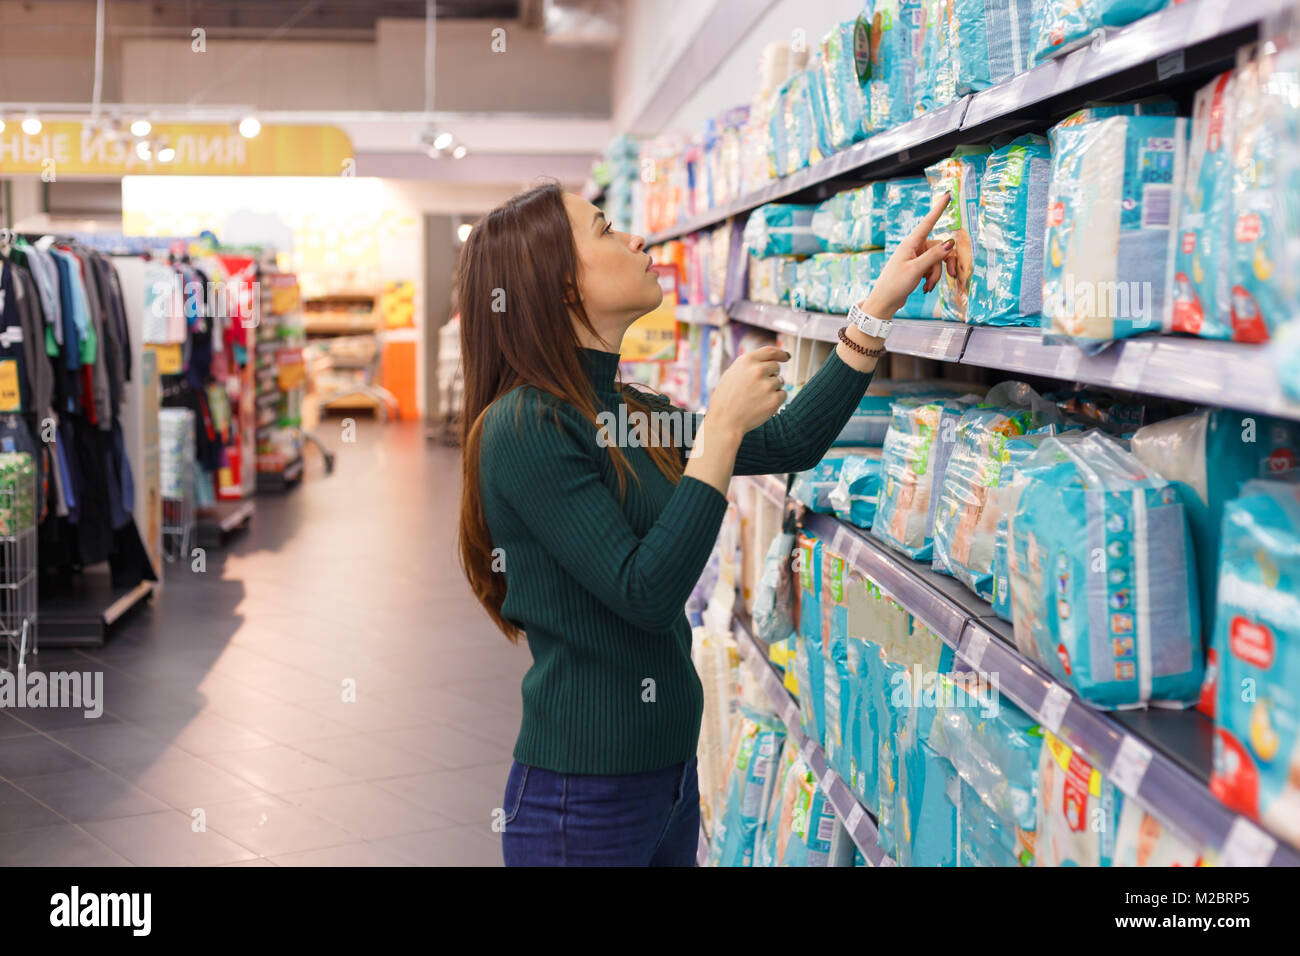 Diapers Stock Photos Amp Diapers Stock Images Alamy